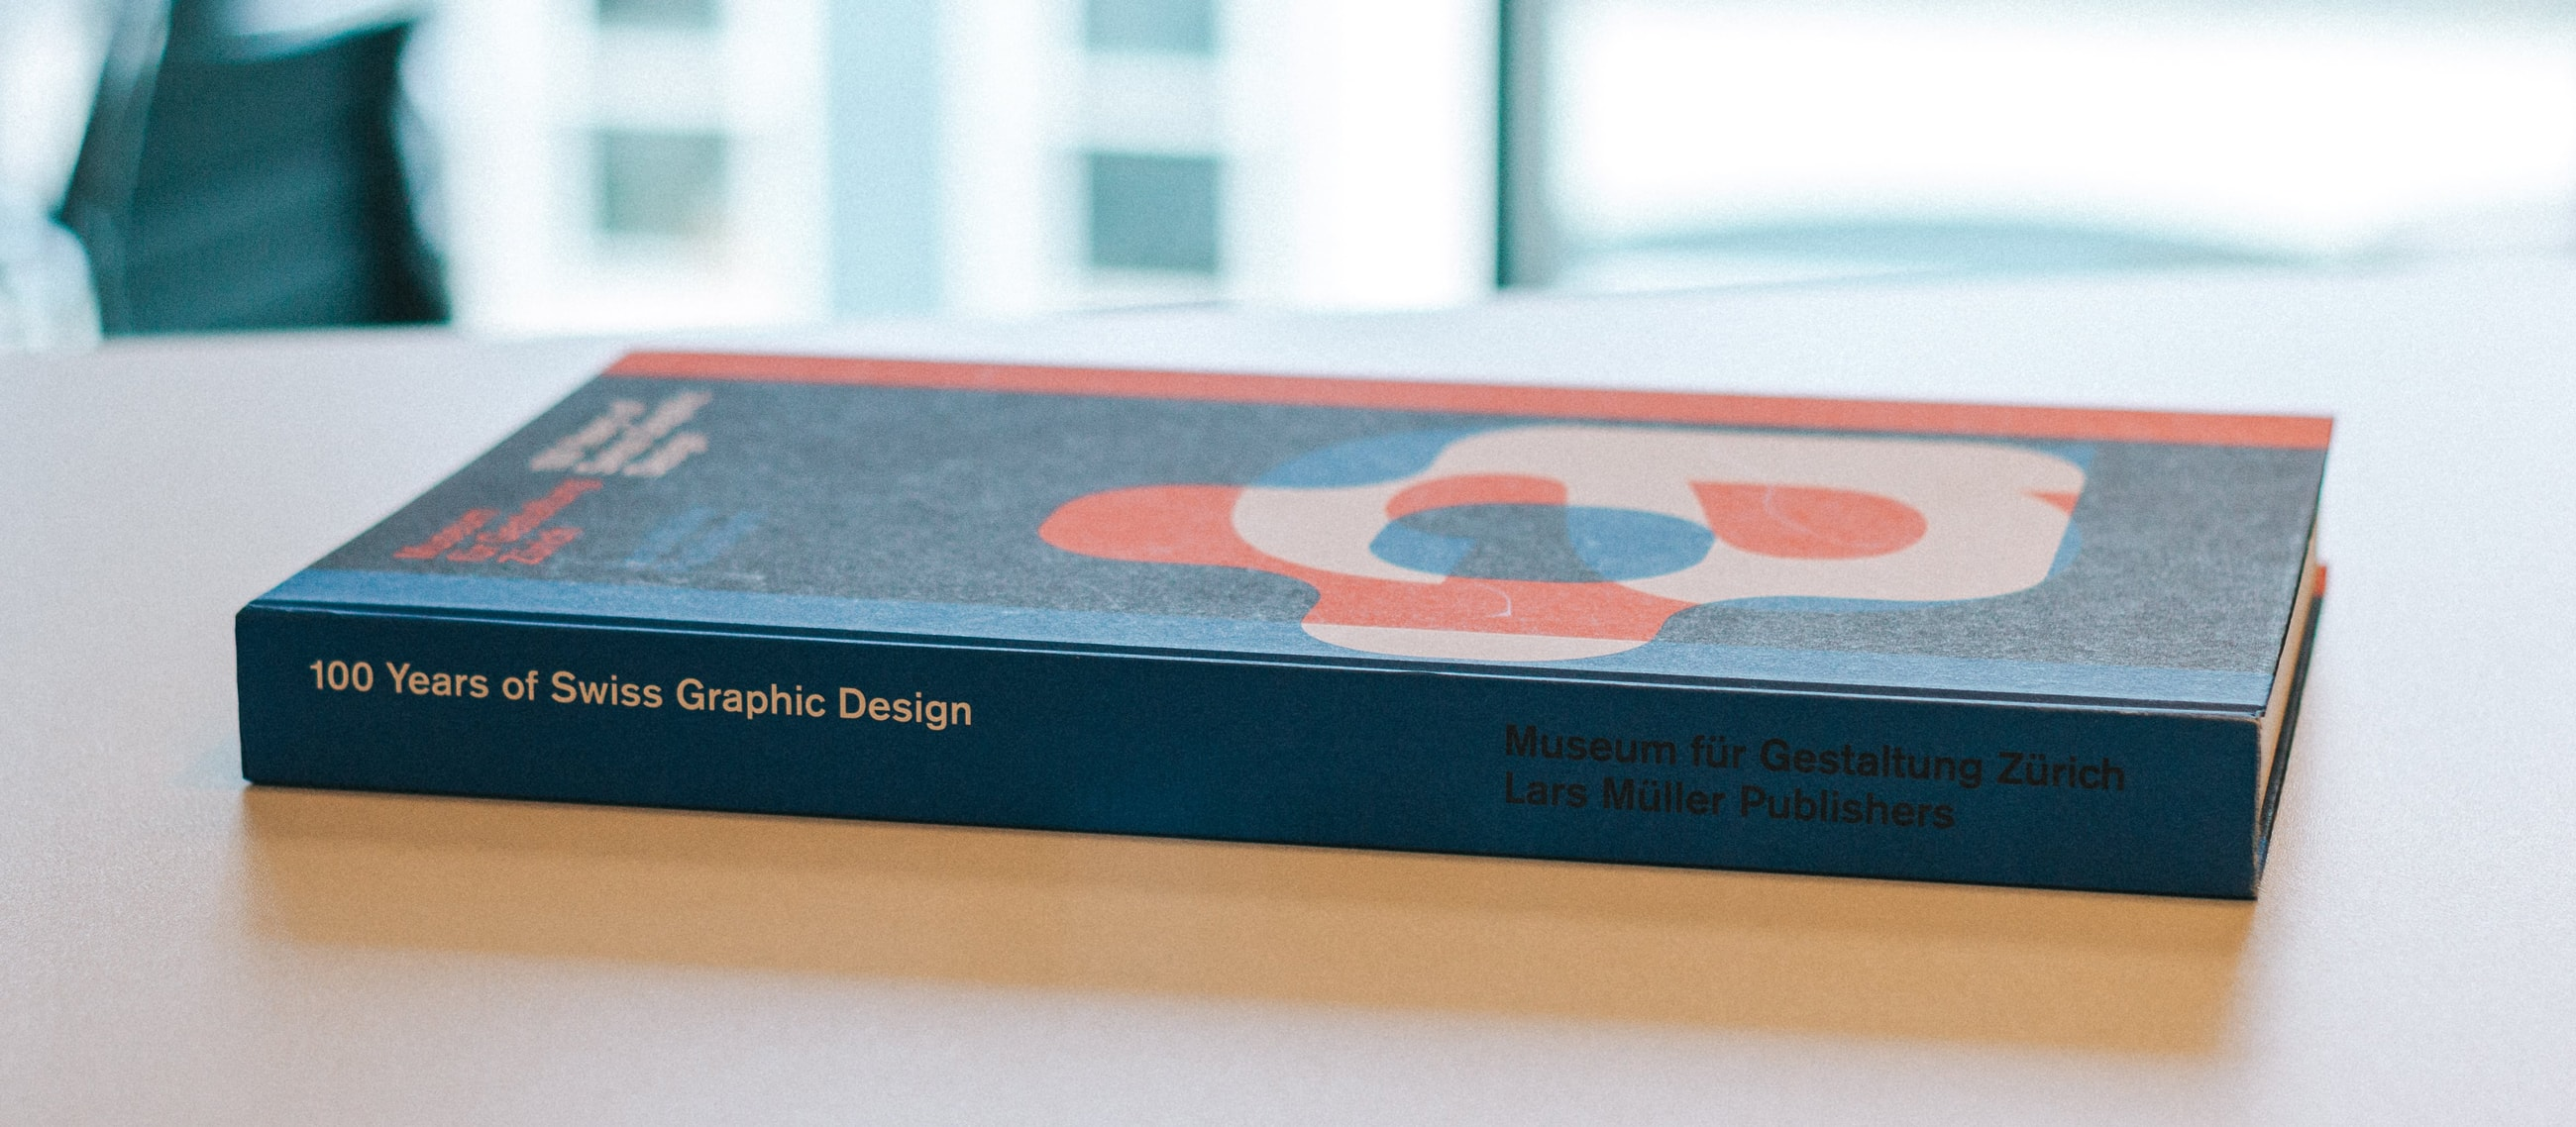 Image of 100 years of Swiss Graphic Design Book